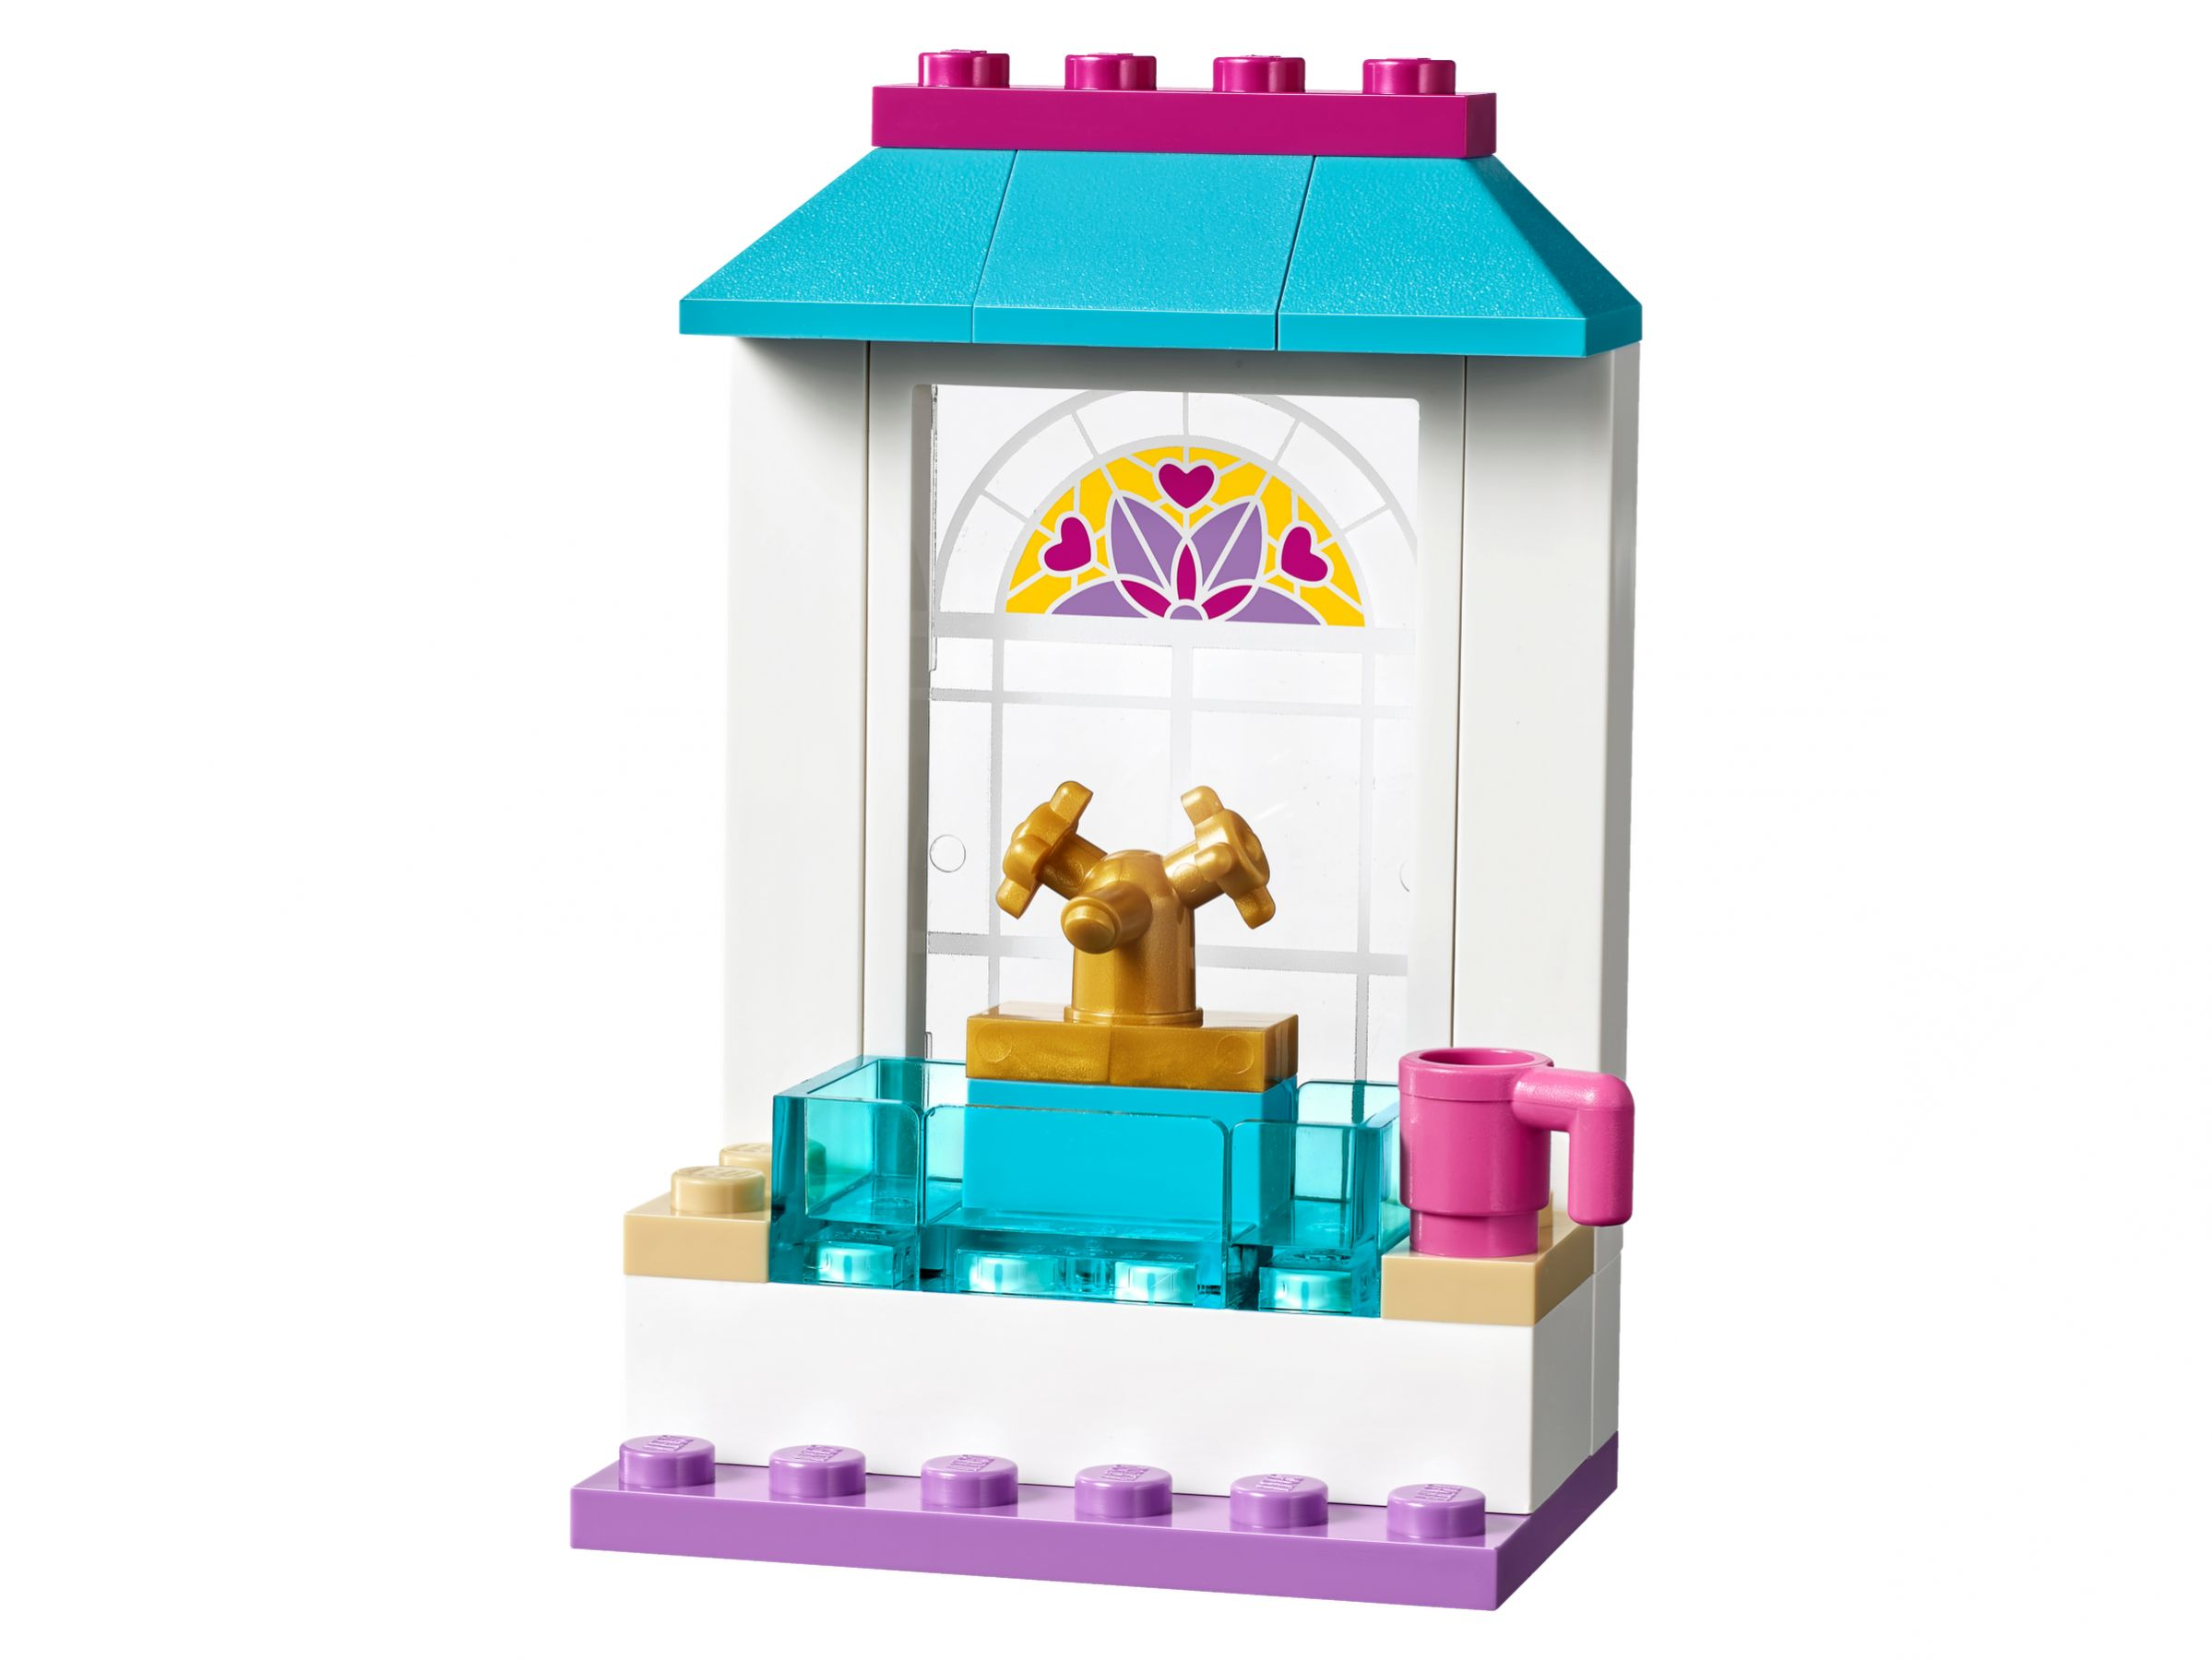 LEGO Friends 41308 Stephanies Backstube LEGO_41308_alt5.jpg